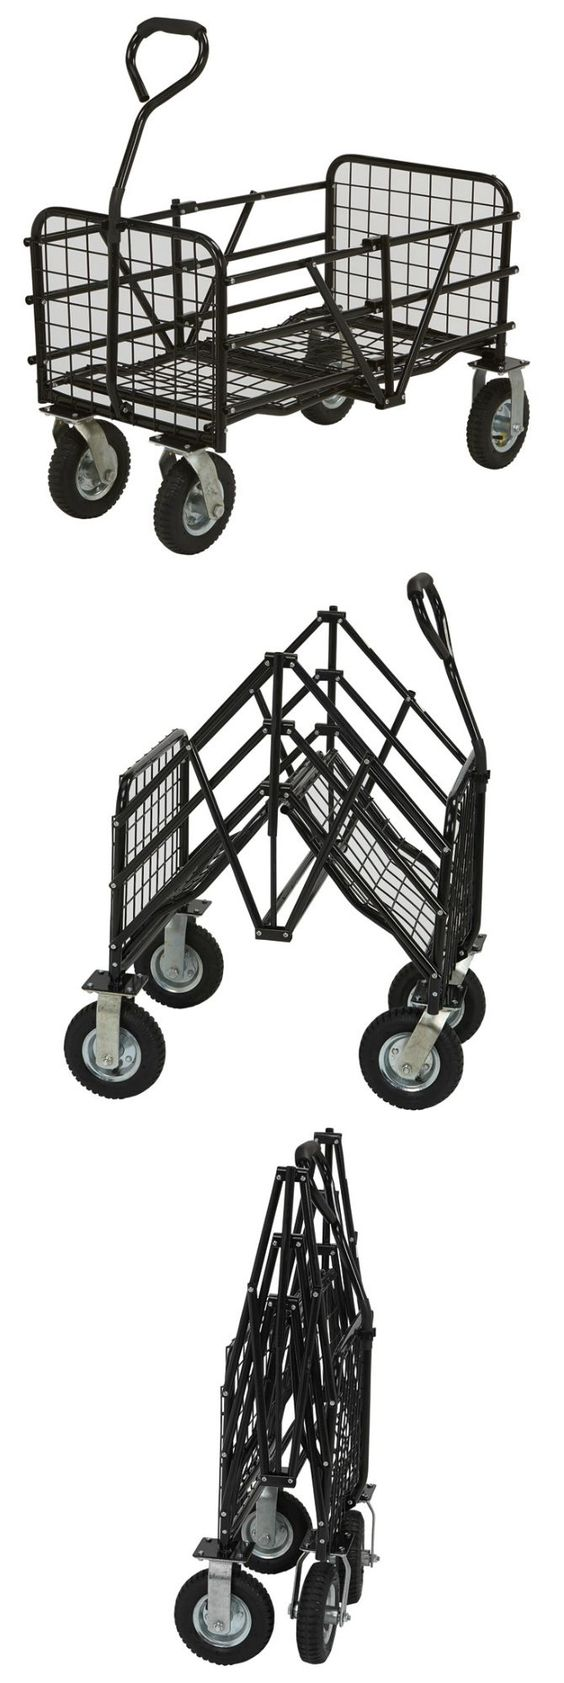 Use this StrongWay Folding Utility Cart to carry anything around the house, garden or warehouse and fold it down for storage when you're done.